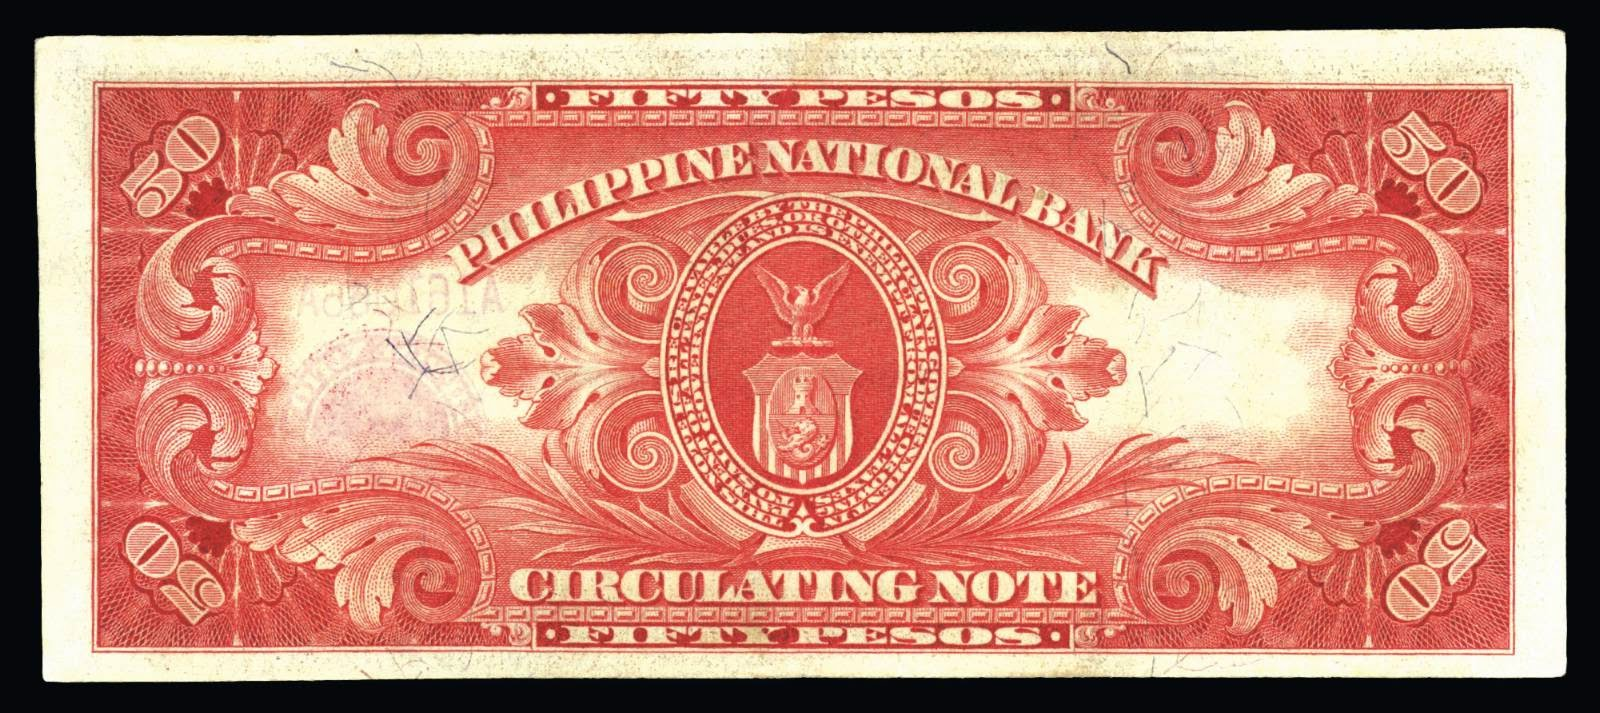 1920 Philippine National Bank Fifty Pesos Circulating Note